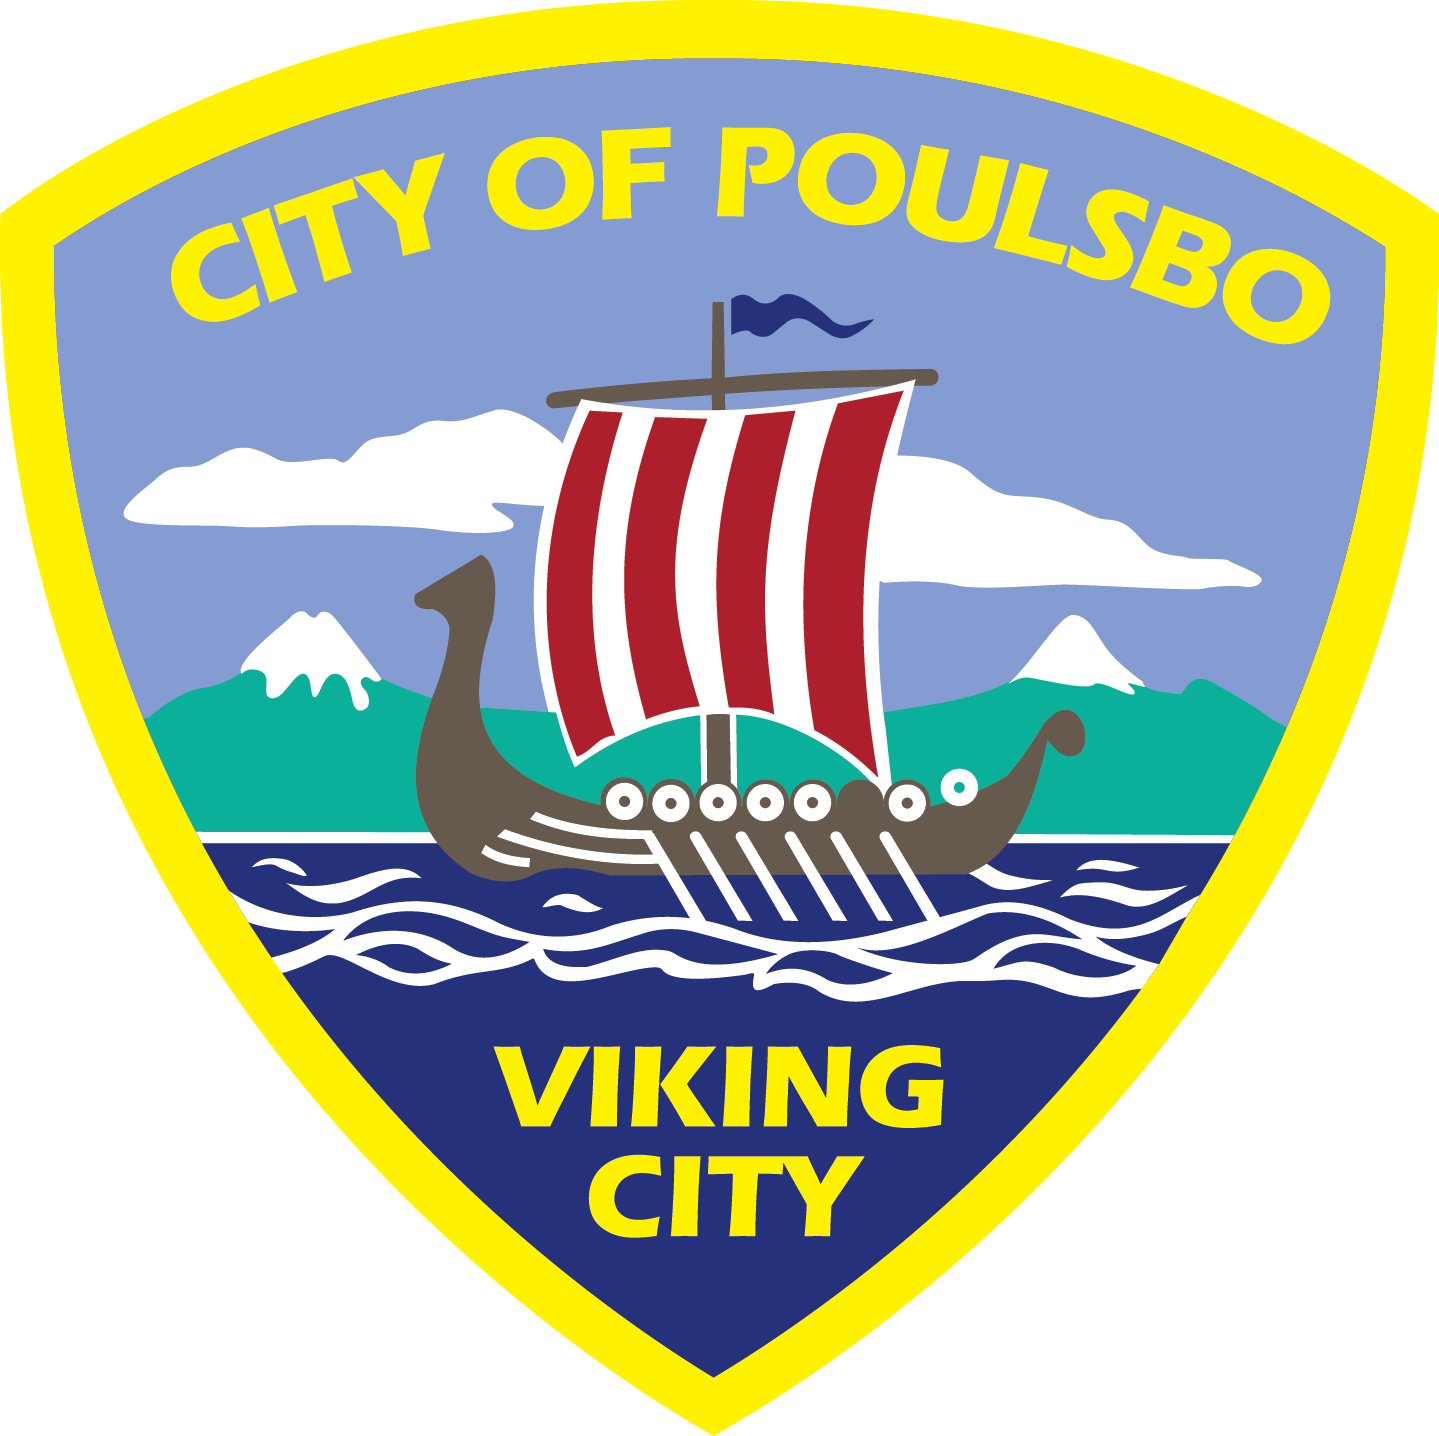 City of Poulsbo